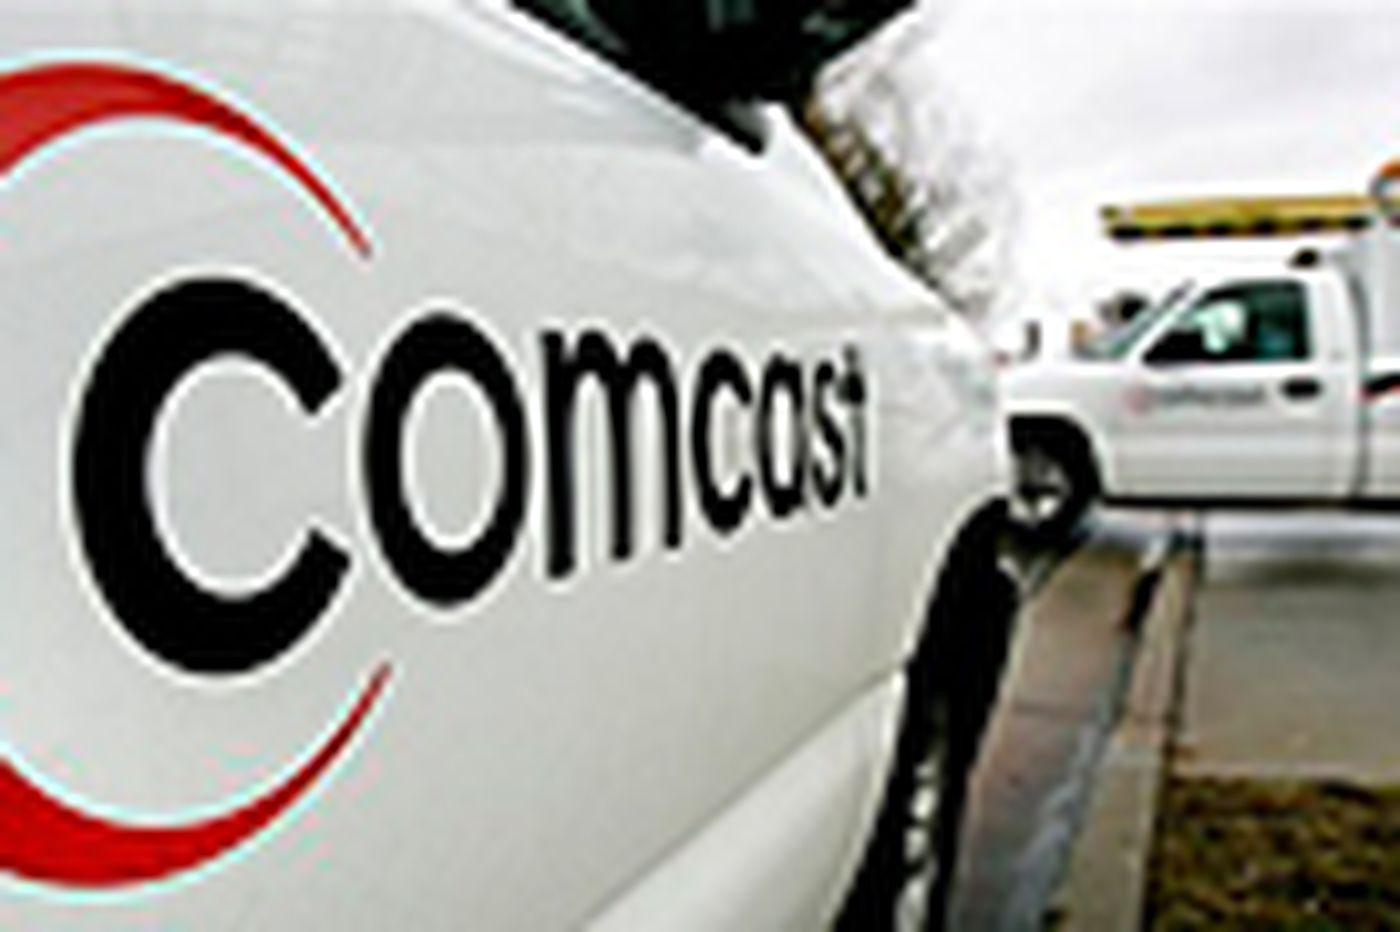 Comcast cuts cost of entry-level cable package 25 percent